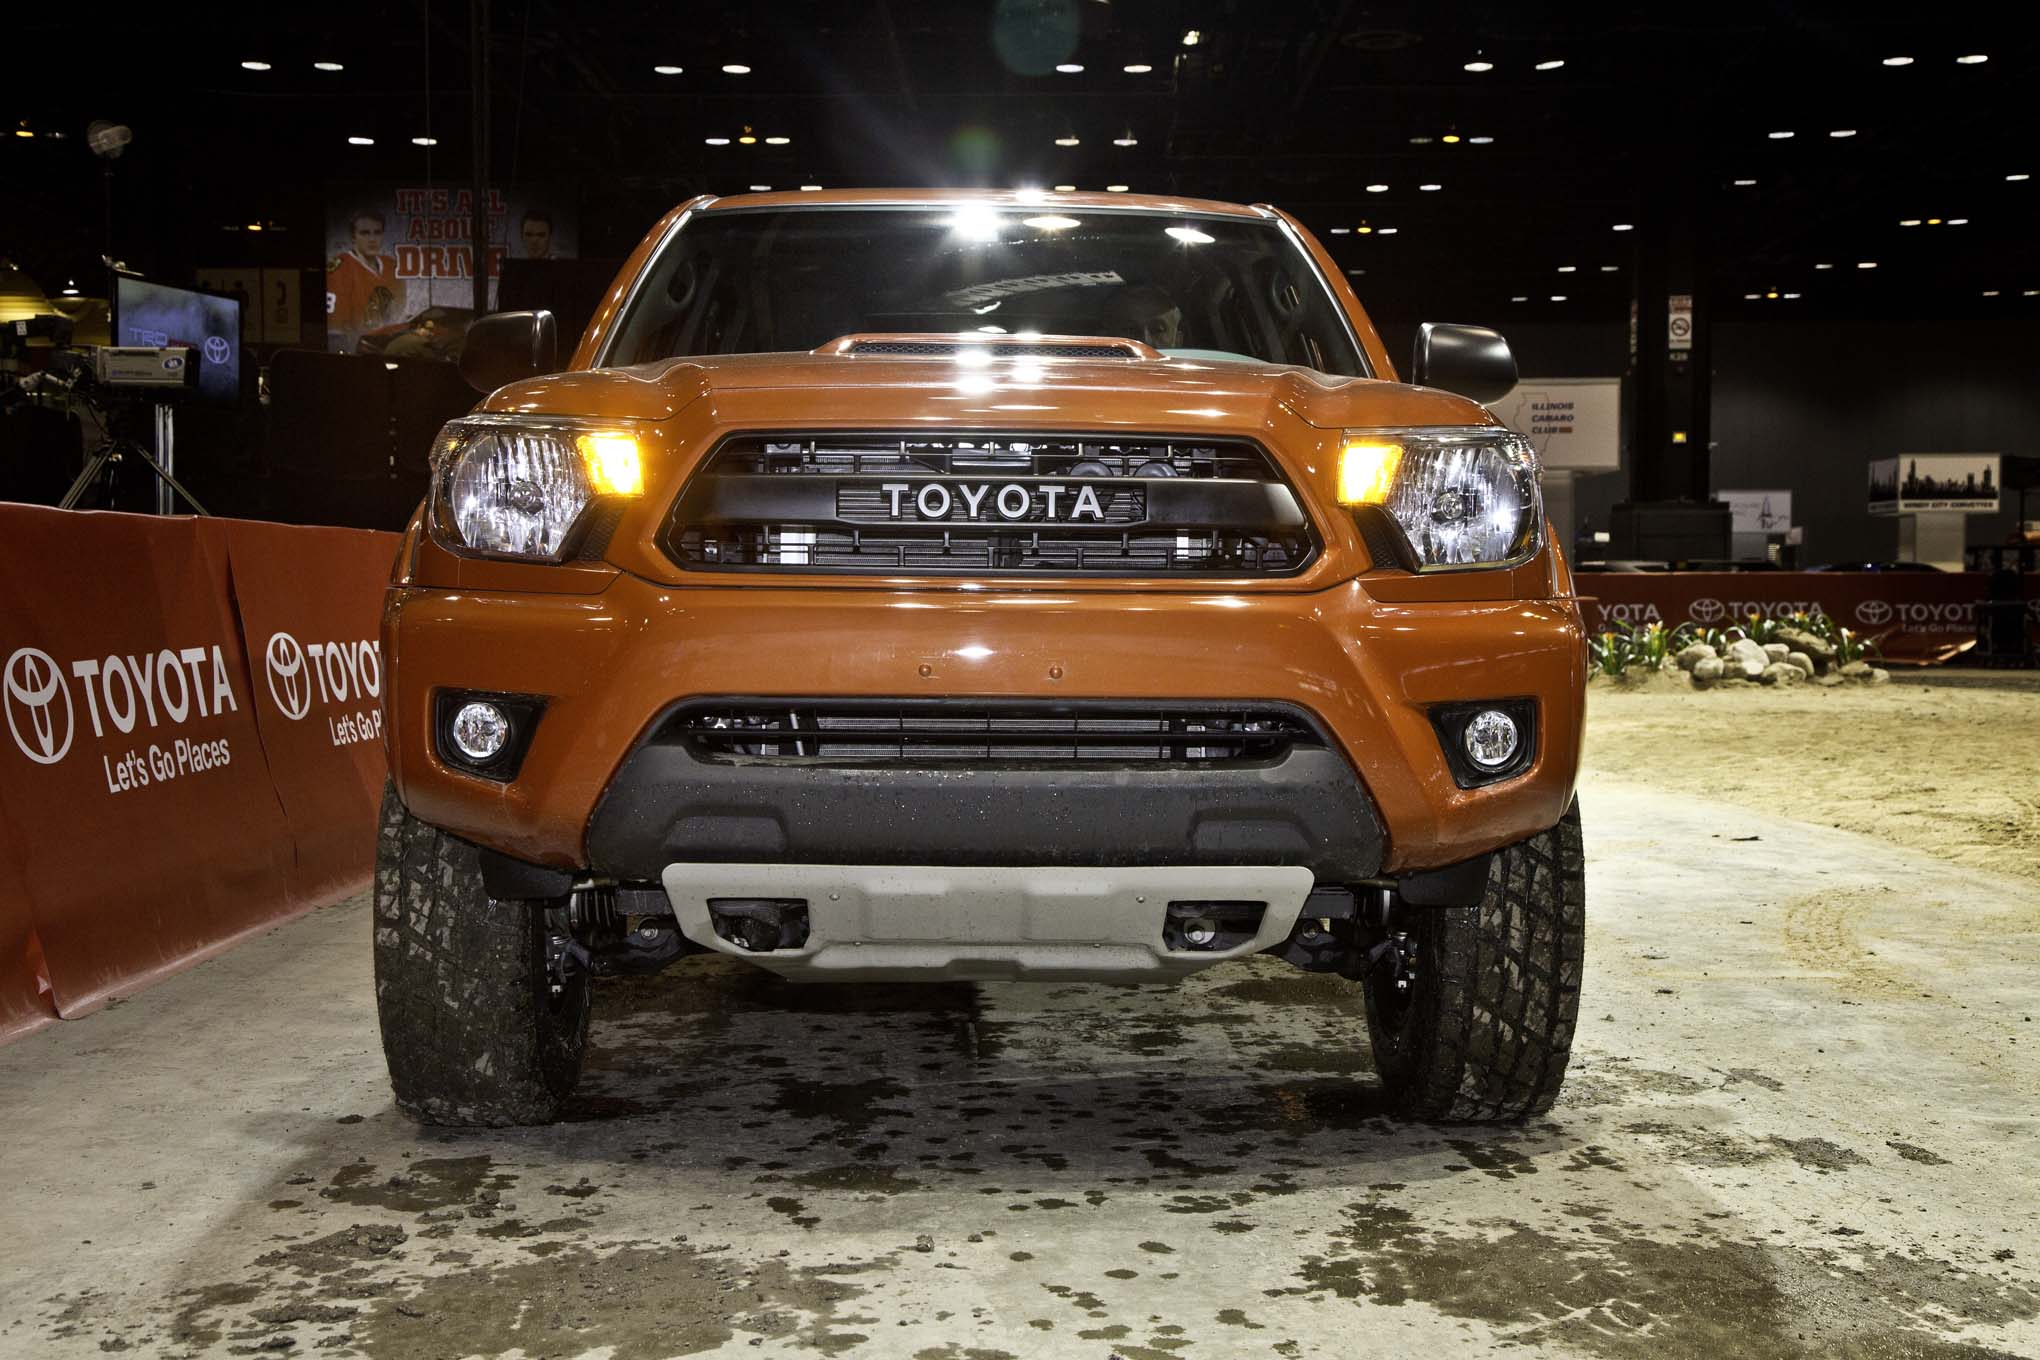 Toyota TRD Pro Series Introduced for Tundra Ta a 4Runner